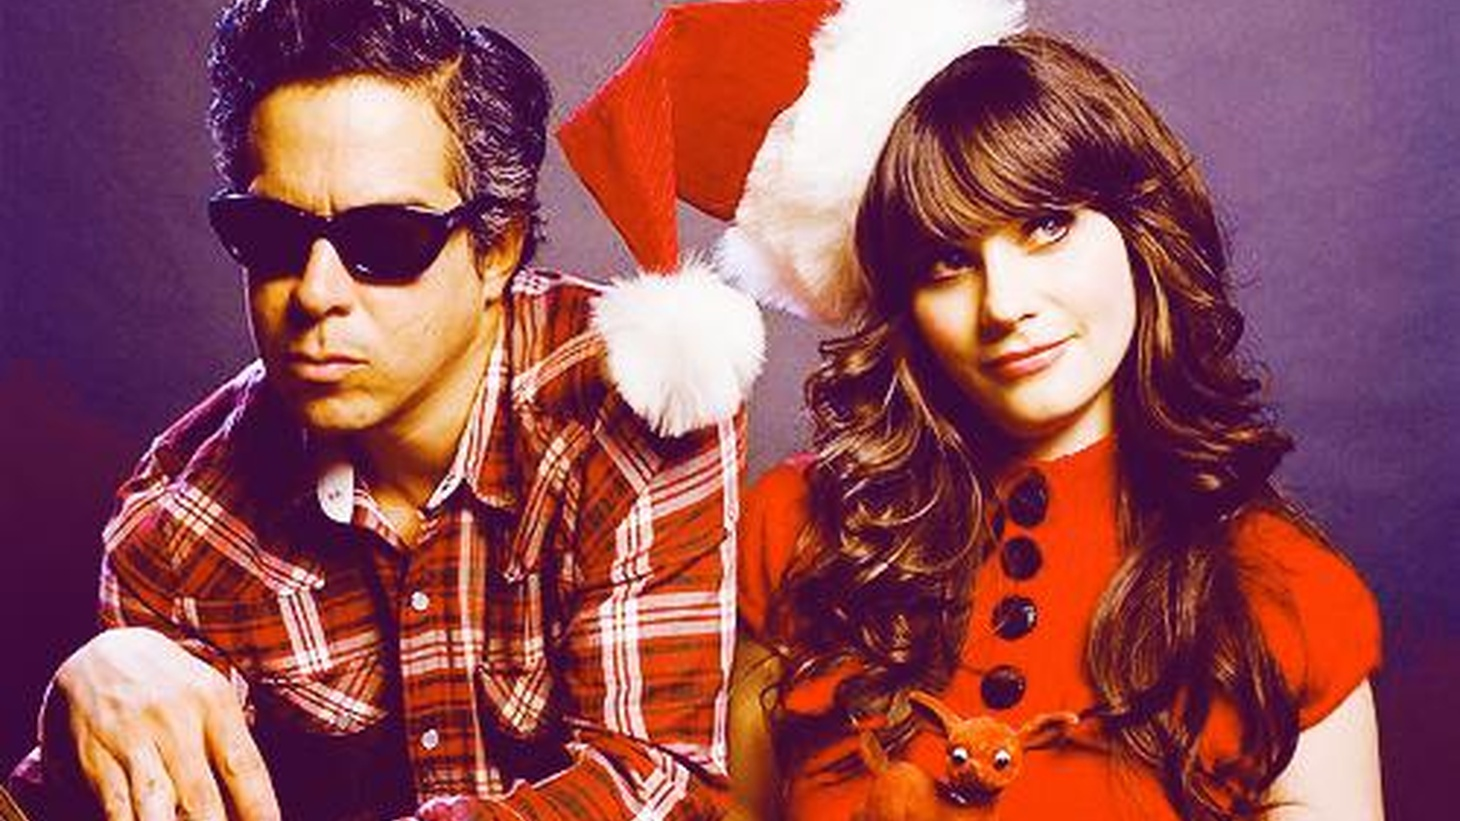 """As a tribute to the holiday season, we offer a song from She & Him -- a project from Zooey Deschanel and M. Ward --as they reinterpret an album's worth of classics. Today's Top Tune is """"The Christmas Waltz,"""" from A Very She & Him Christmas."""